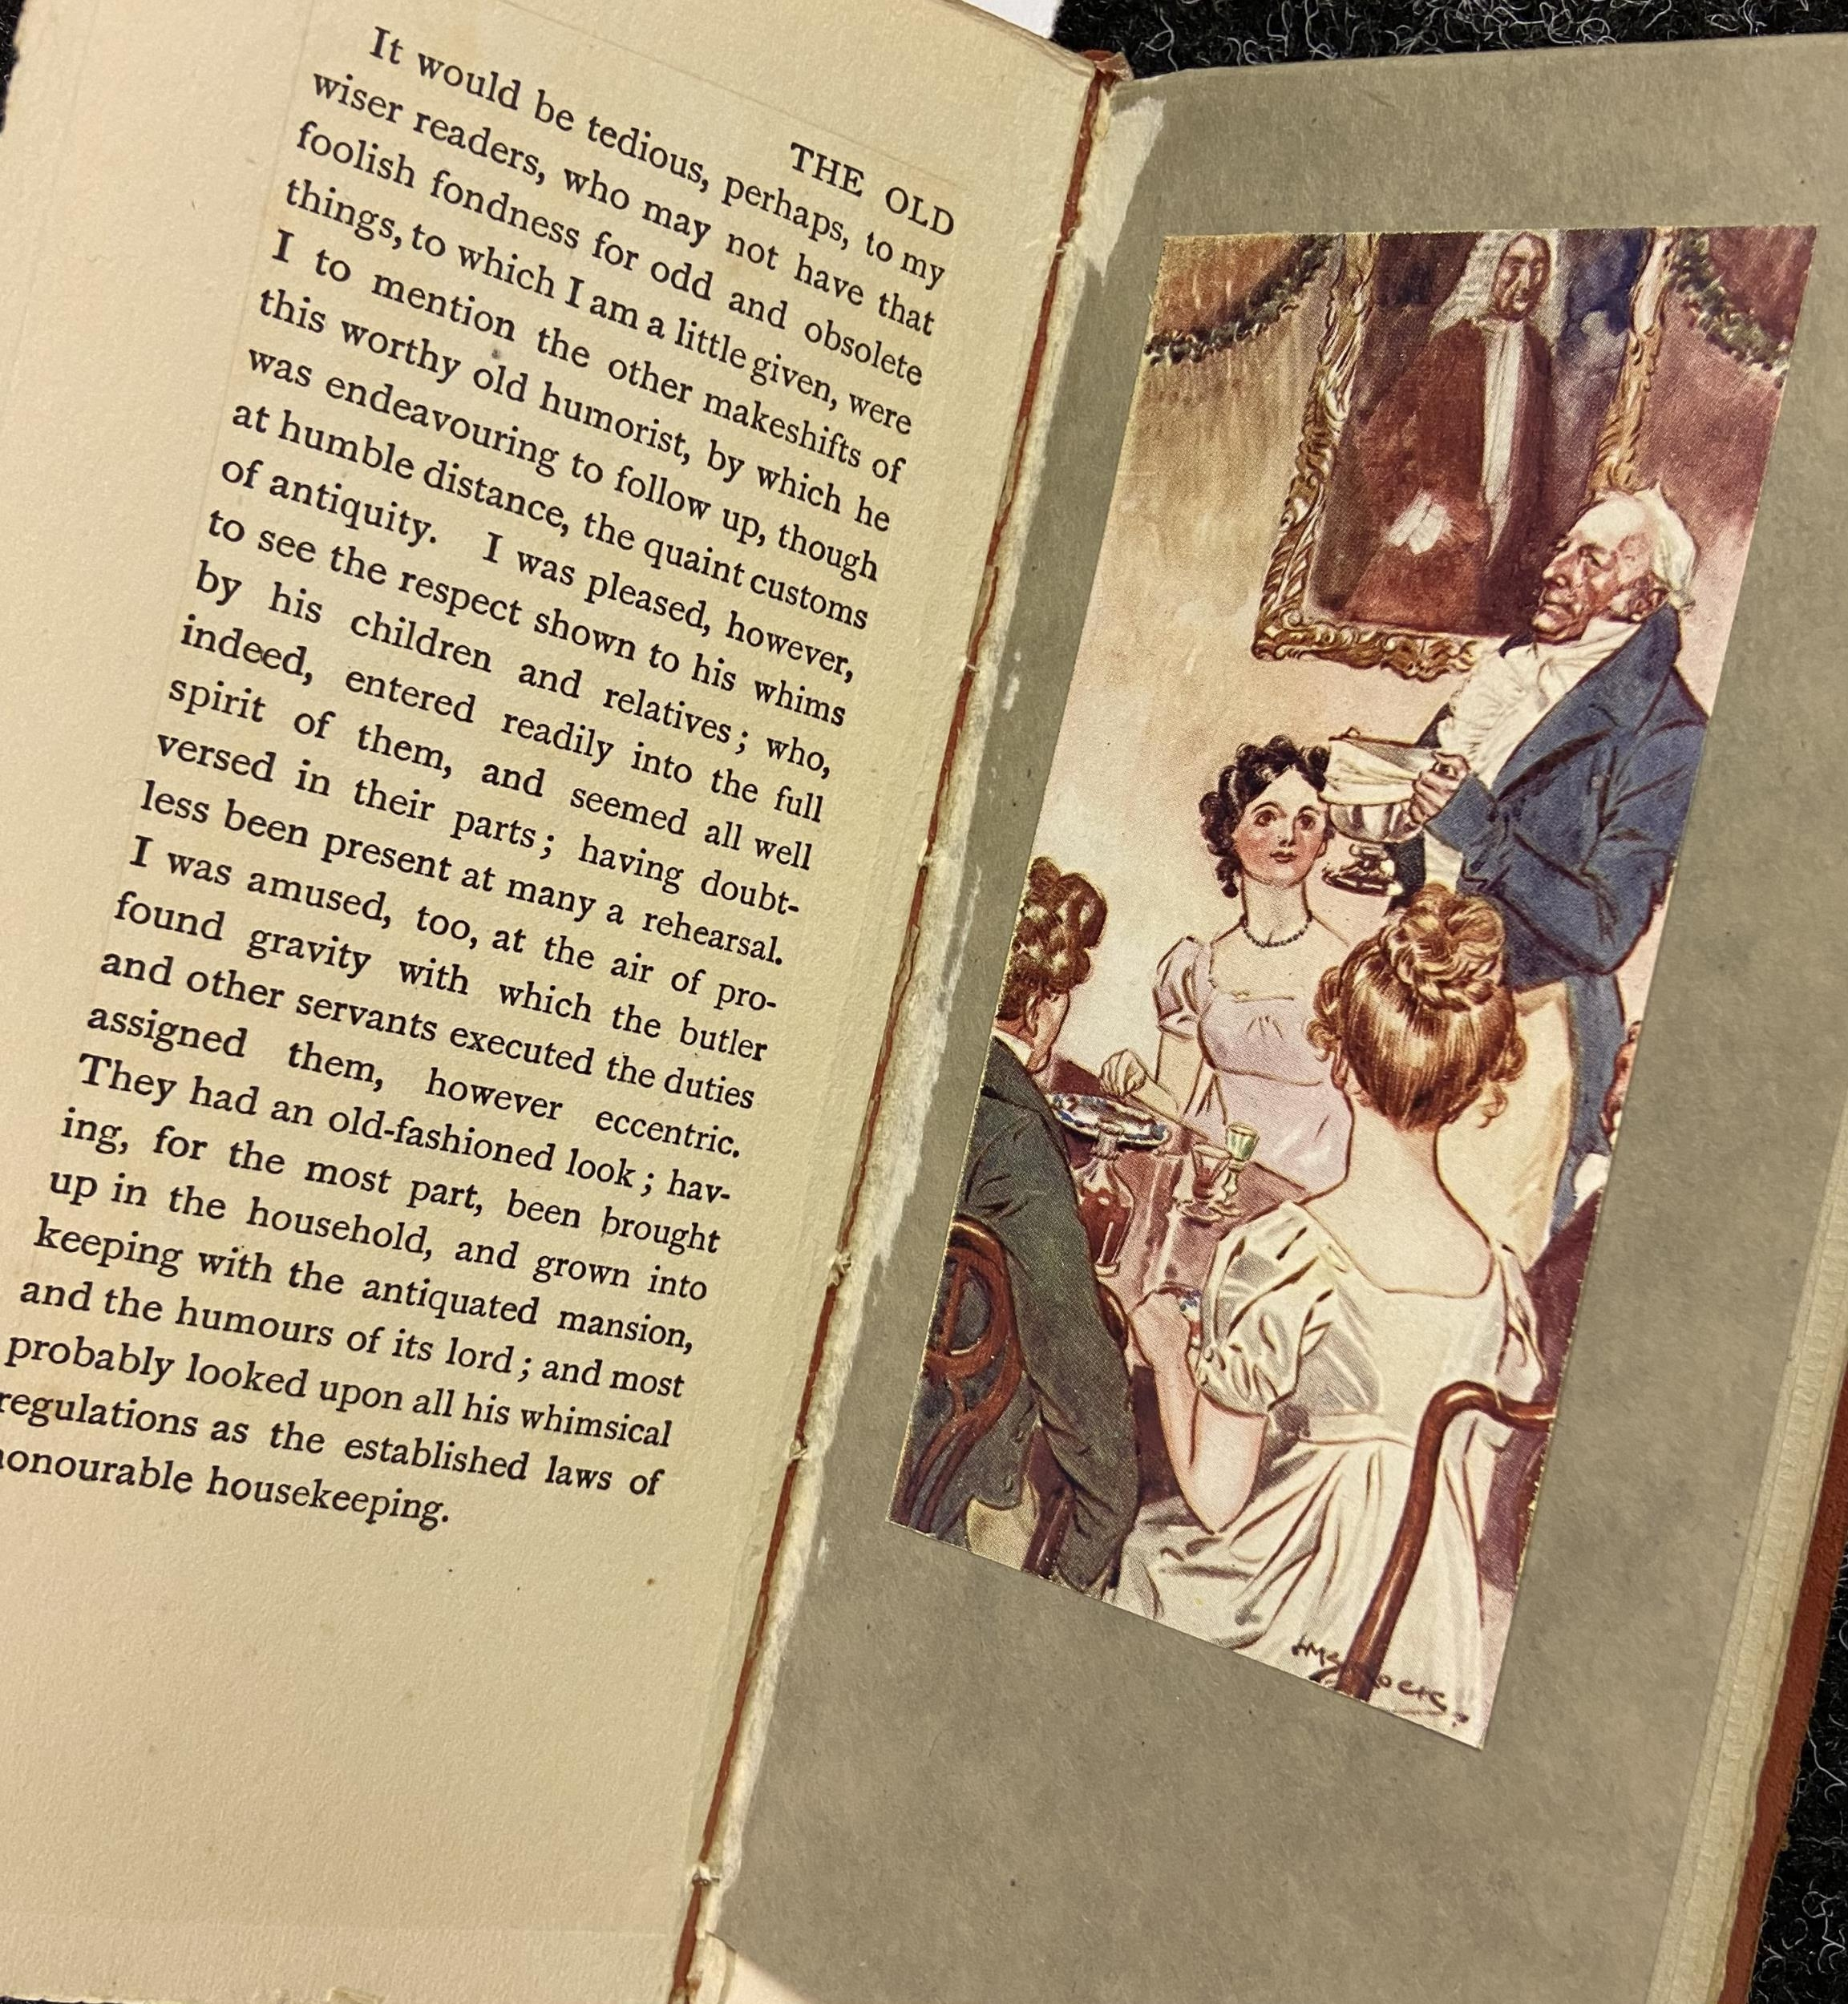 'The Old Christmas Dinner by Washington IRVING with Illustrations by H.M Brock - Image 3 of 4